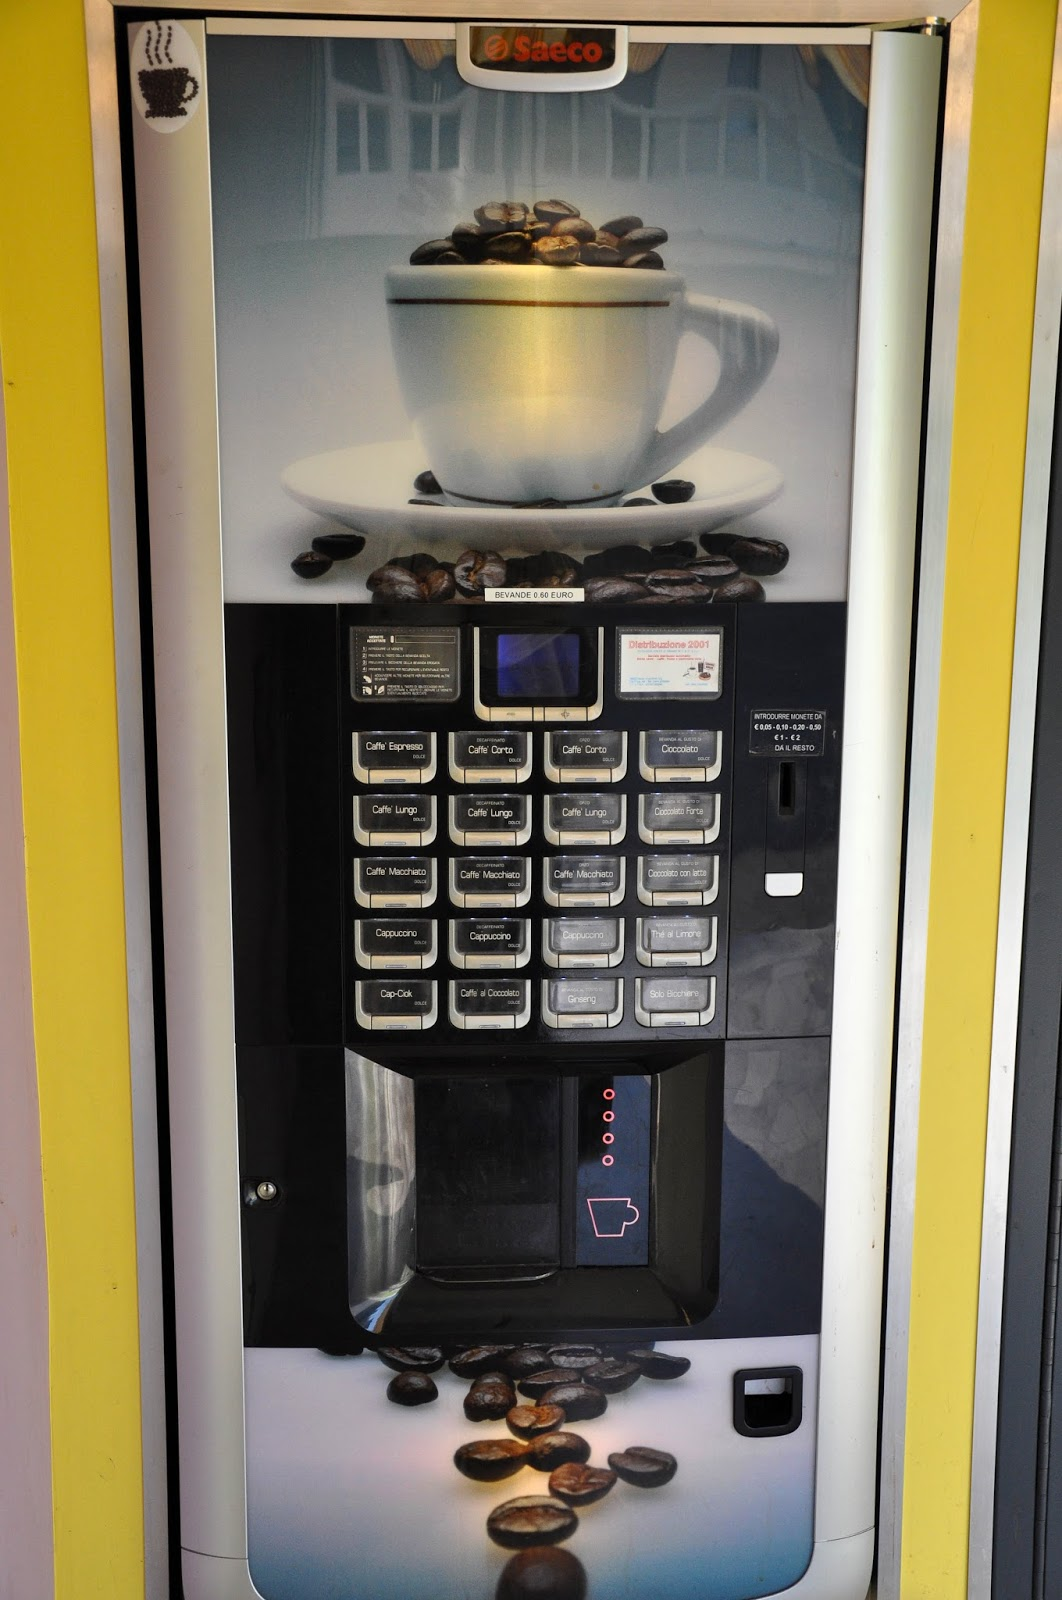 Coffee vending machine, Vicenza, Veneto, Italy